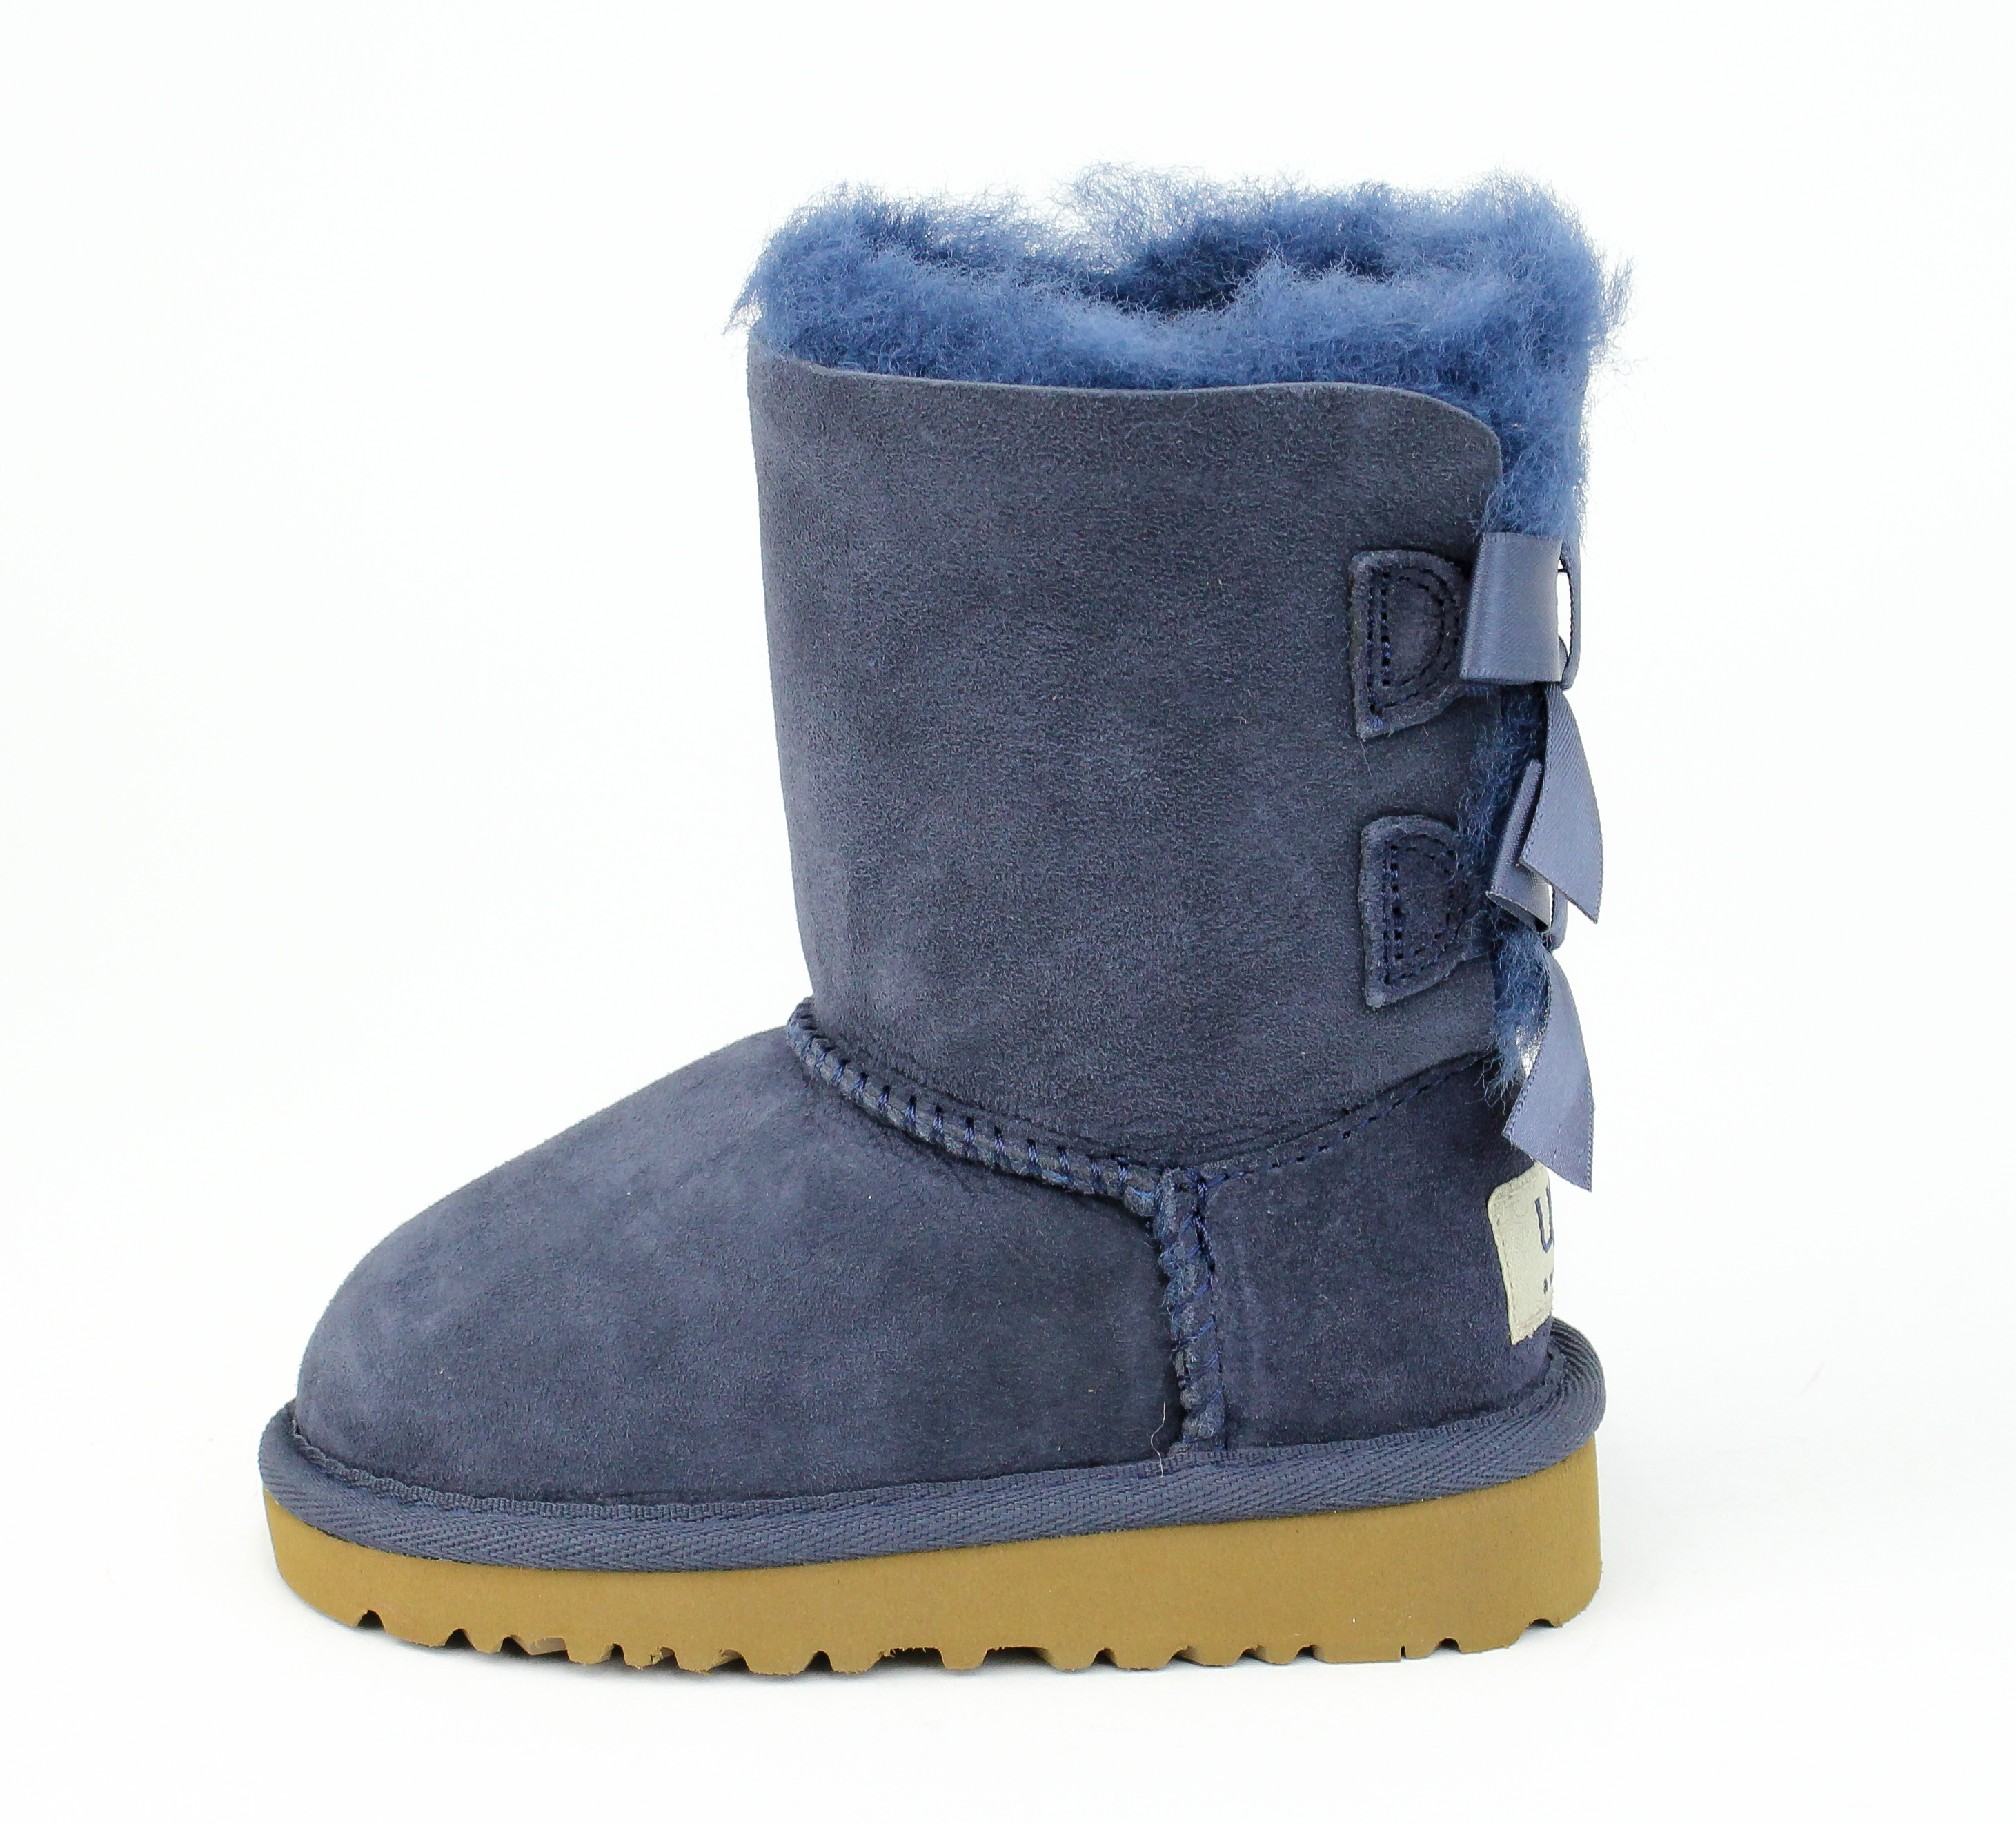 UGGS official ugg site Official Site - UGG Outlet: Womens UGG Boots - Womens UGG Boots Fashion UGG Mens UGG Boots Kids UGG Boots UGG Accessory Infants UGG Official UGG Australia Shipping Rates. Shipping rates depend on the selected shipping speed and weight/size of the official ugg site .